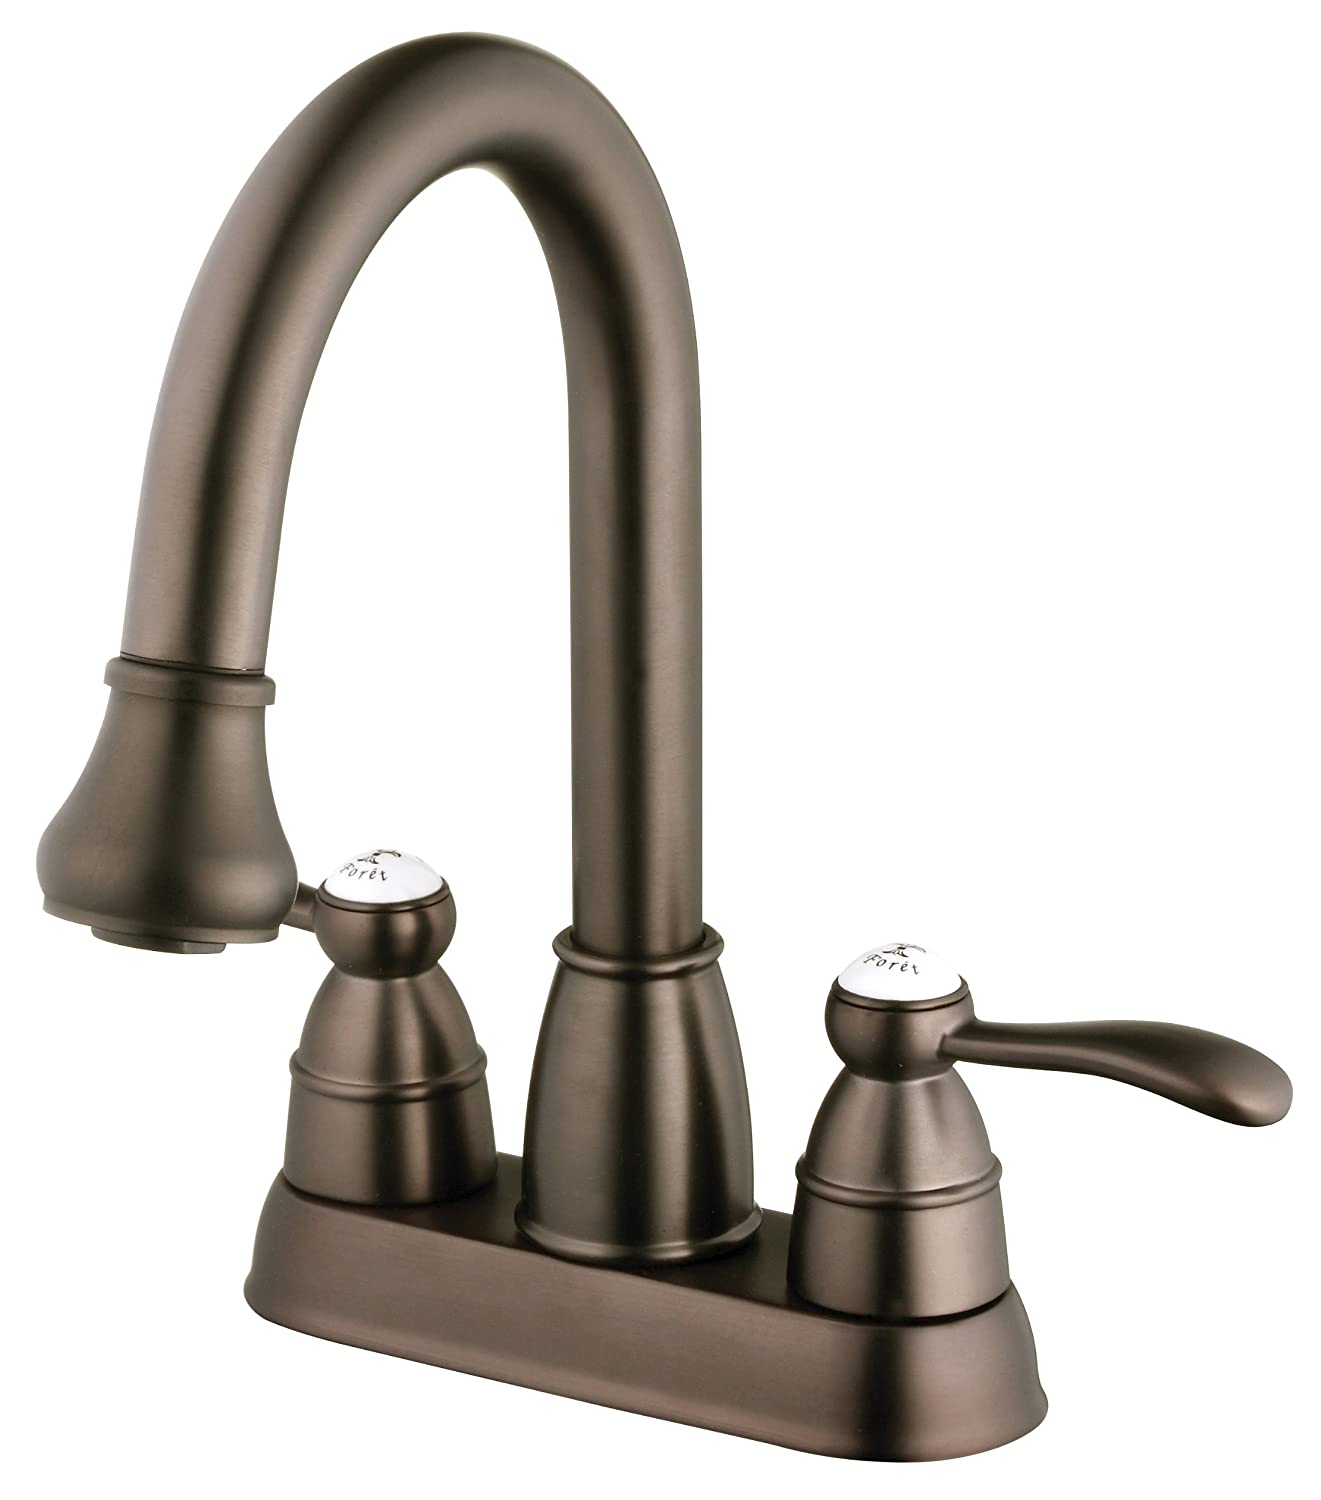 any heavy for ideal front premier attractive commercial kitchen chrome faucets is hole salon this use also restaurant home hardware pantry duty faucet enough in or laundry single environment